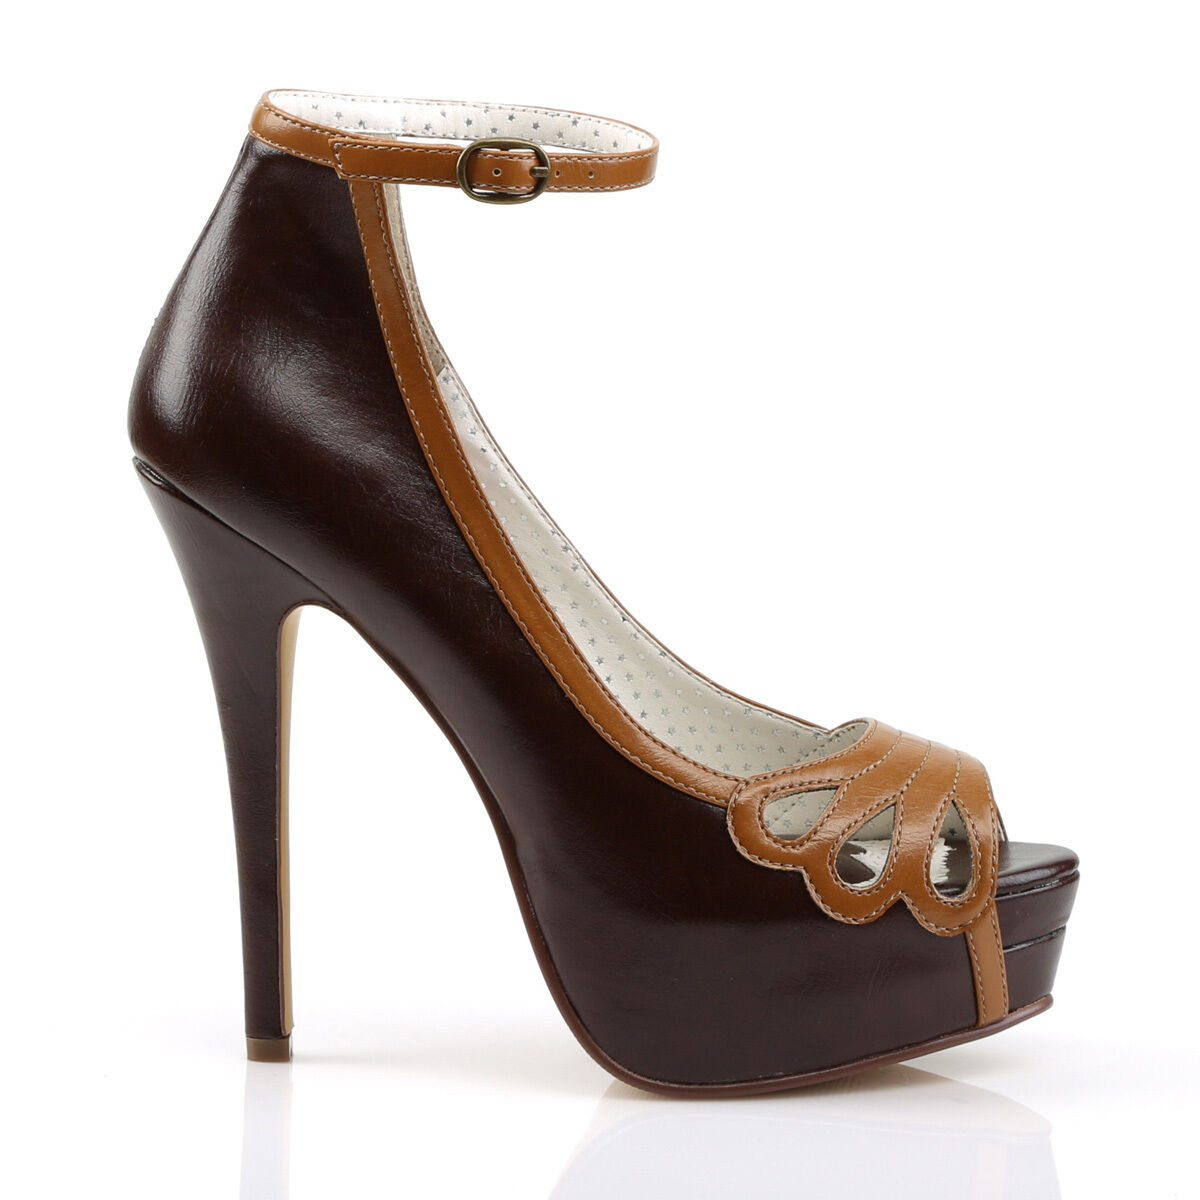 Bella Pin-Up marron Maple Ankle Strap Peep Toe Pump chaussures High Heel chaussures Taille 11